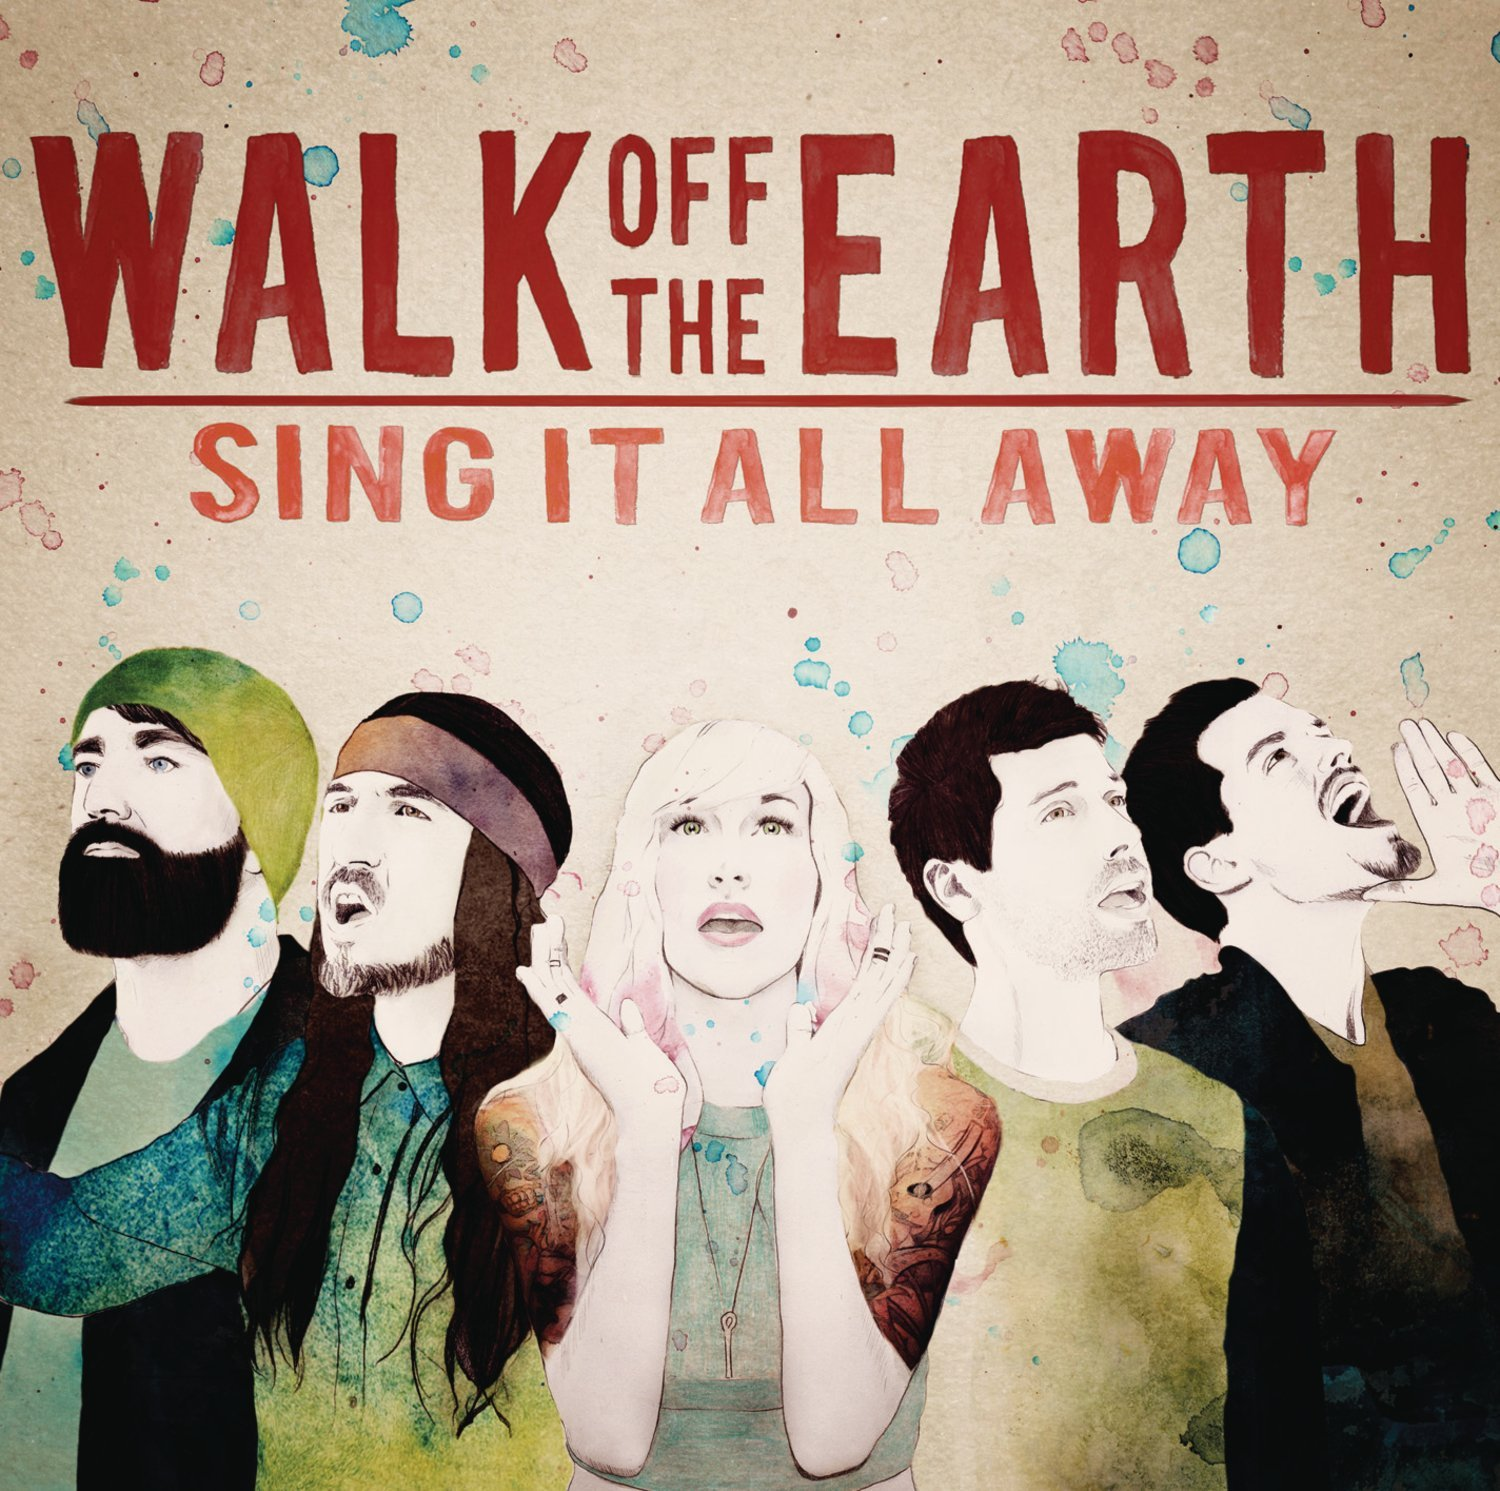 Walk Off the Earth - Sing It All Away (Music CD)